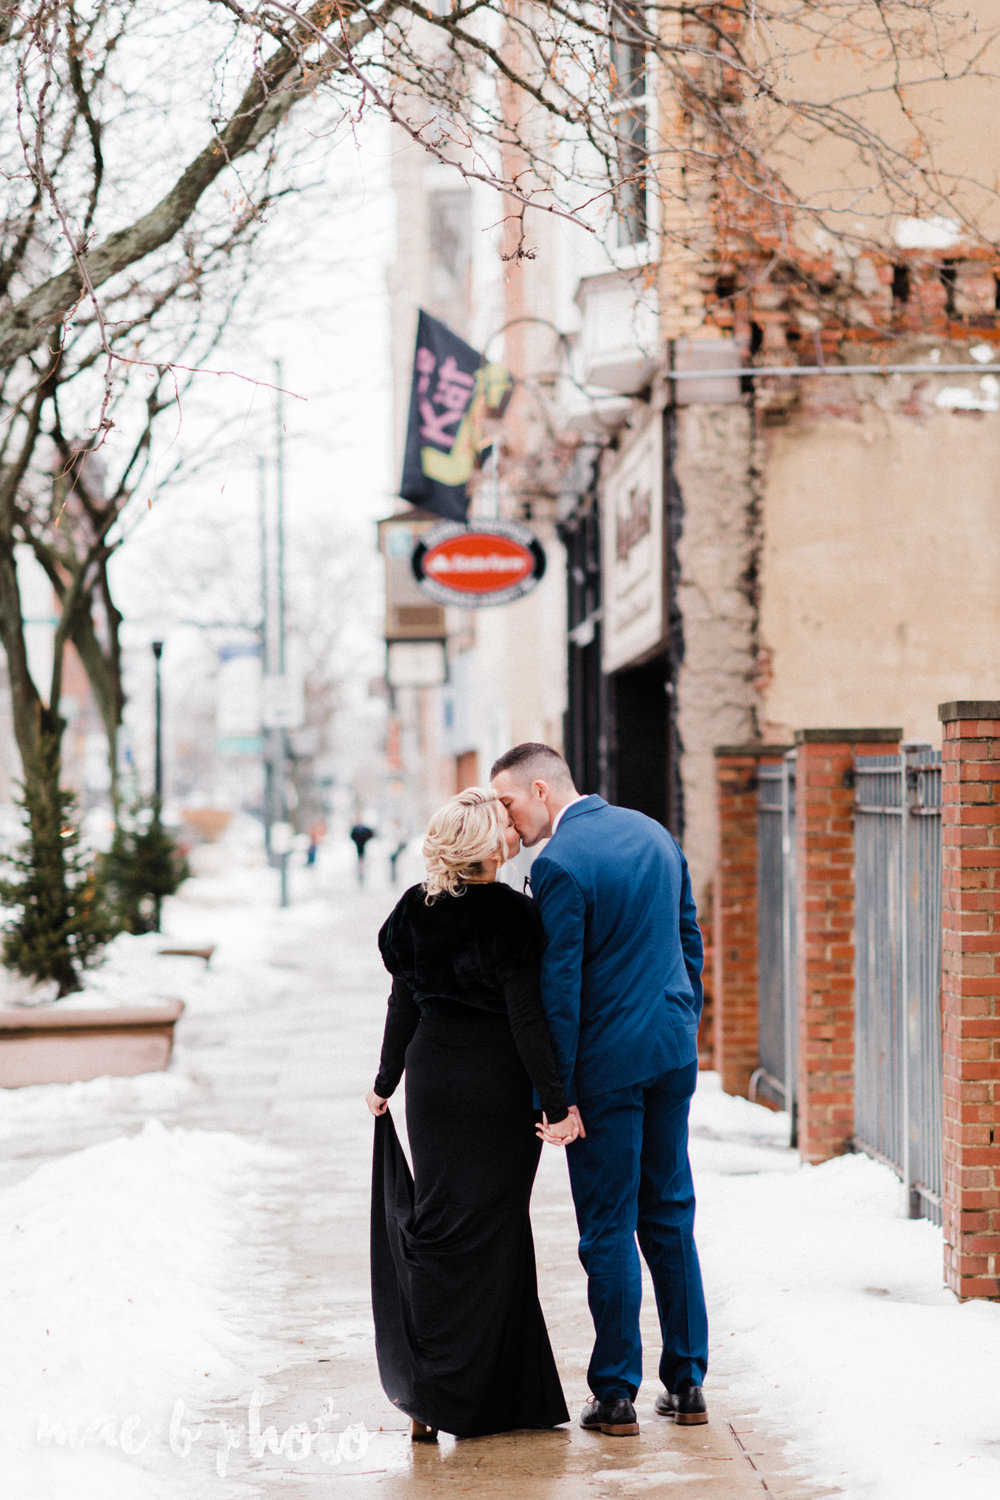 paige and cale's personalized winter glam engagement session at the butler institute of american art and downtown youngstown in youngstown ohio photographed by youngstown wedding photographer mae b photo-24.jpg